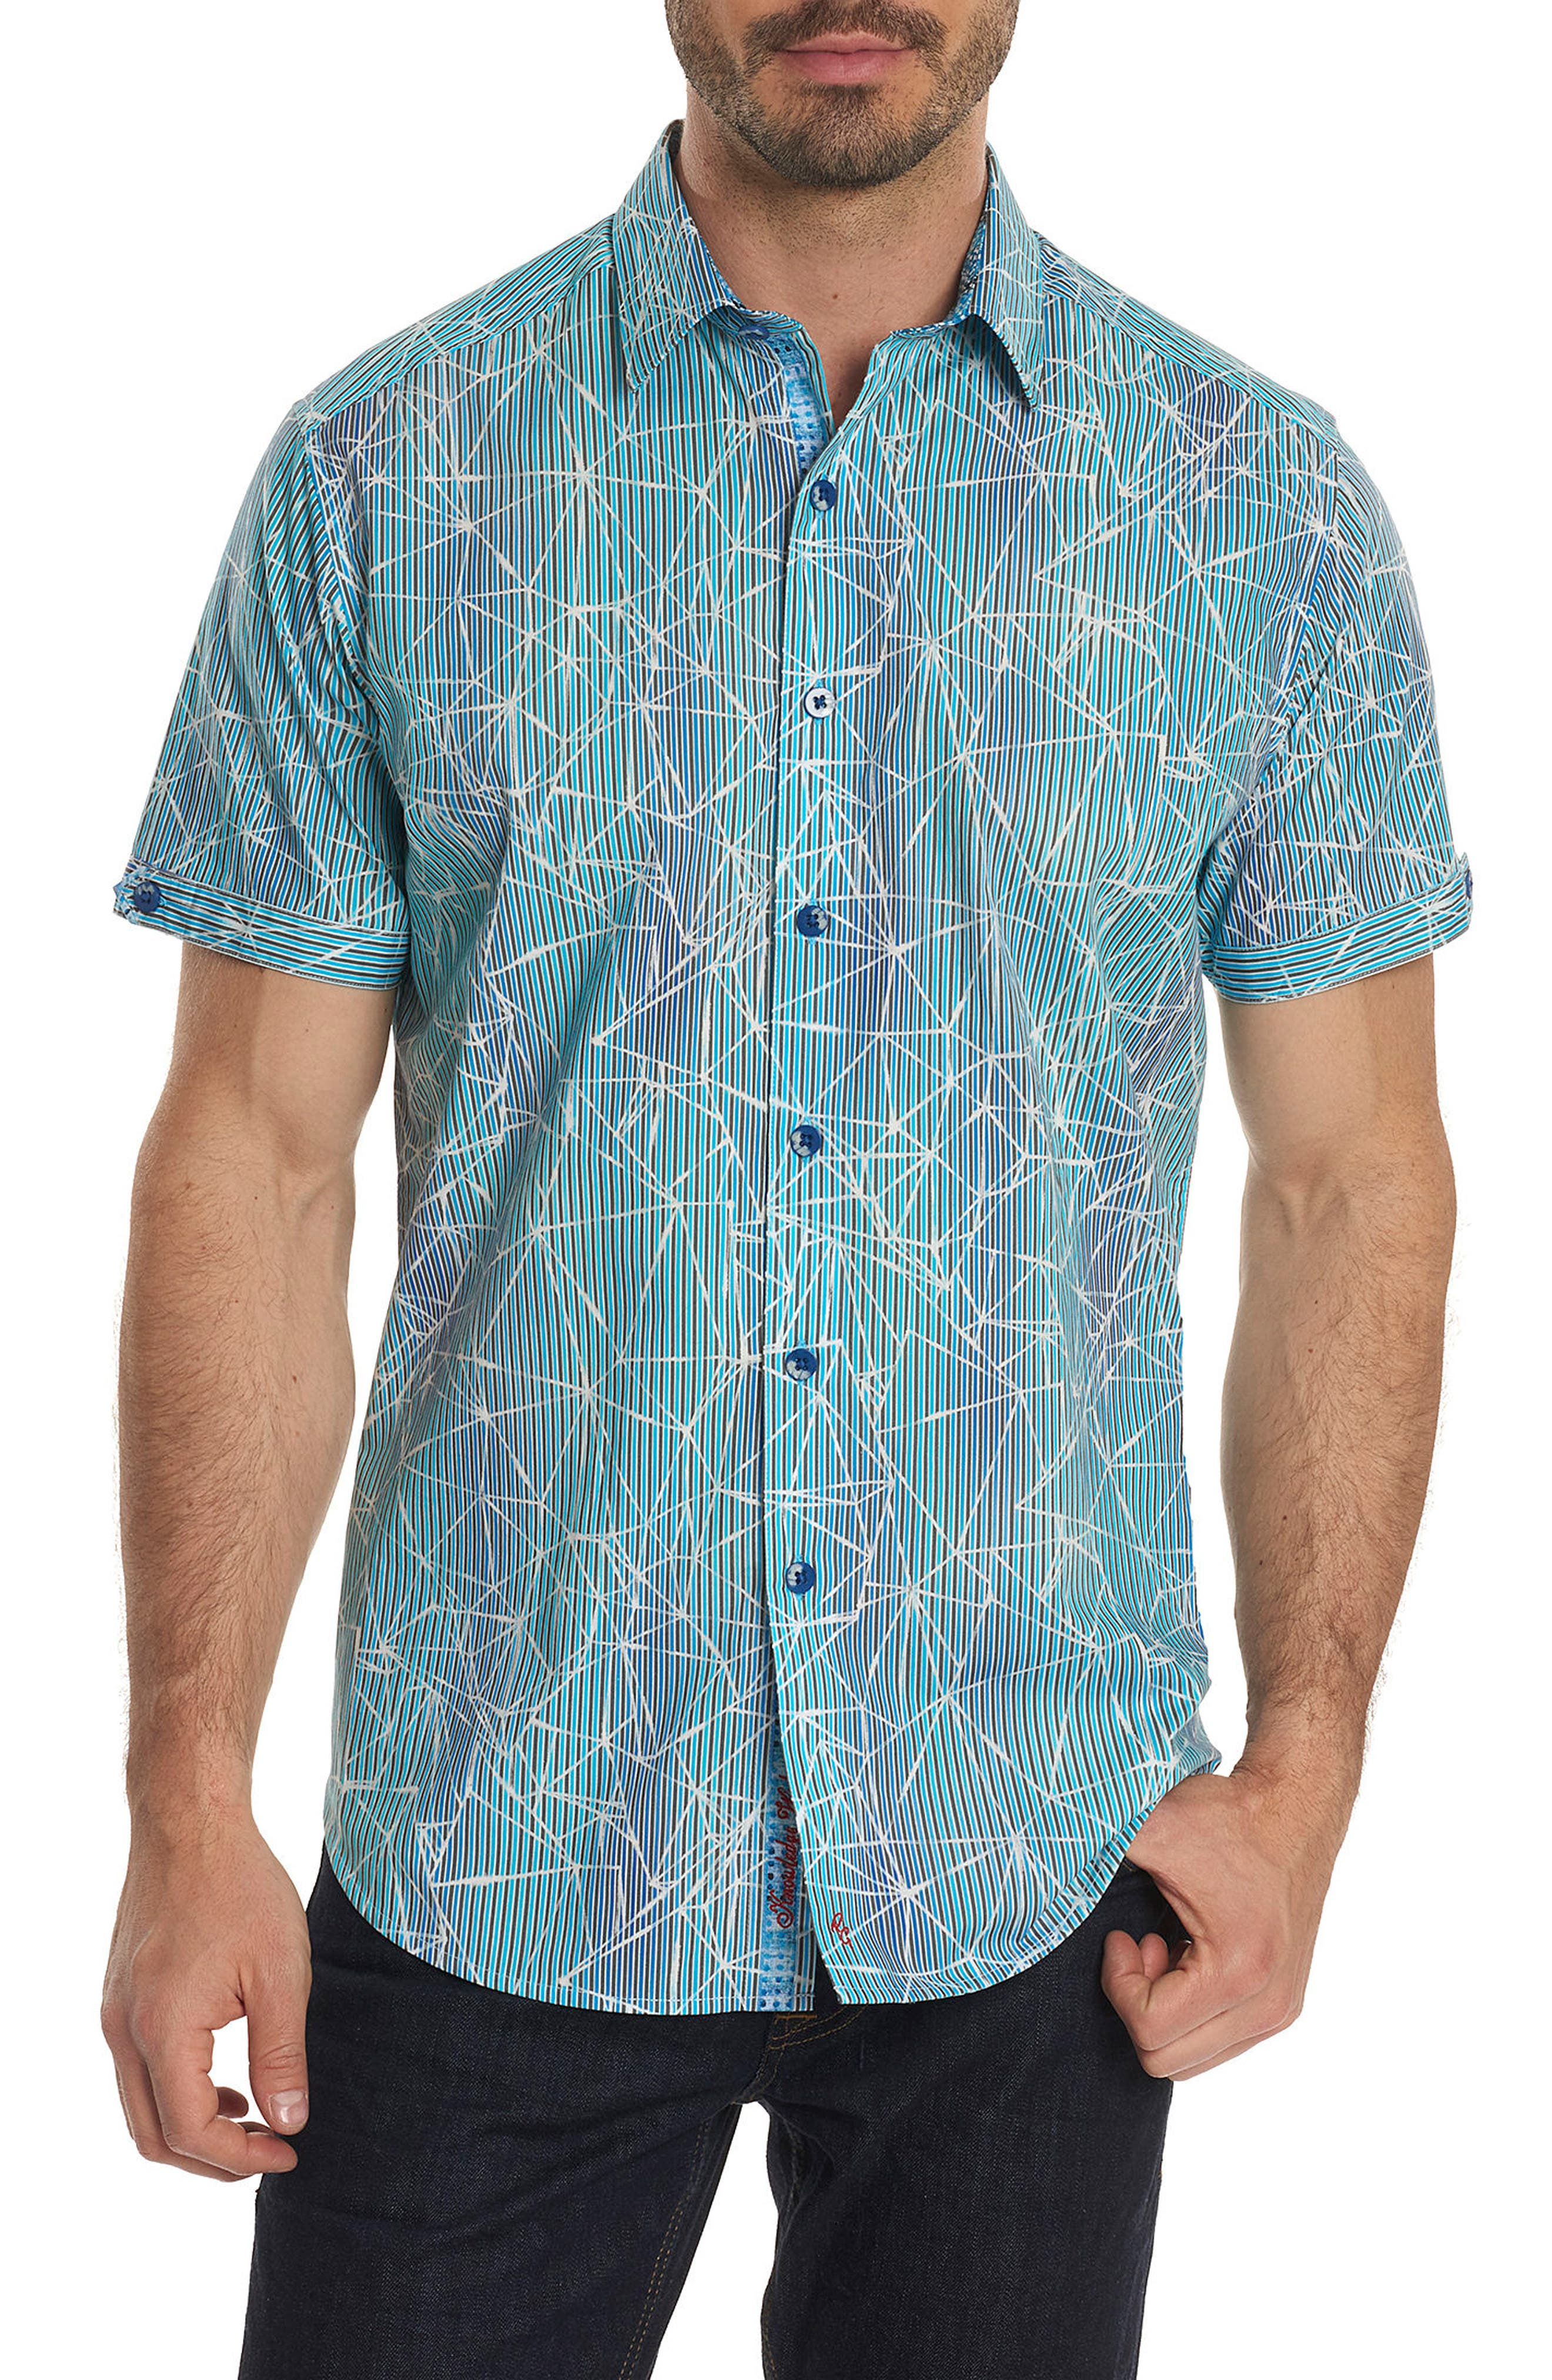 Illusions Print Sport Shirt,                         Main,                         color, TURQUOISE